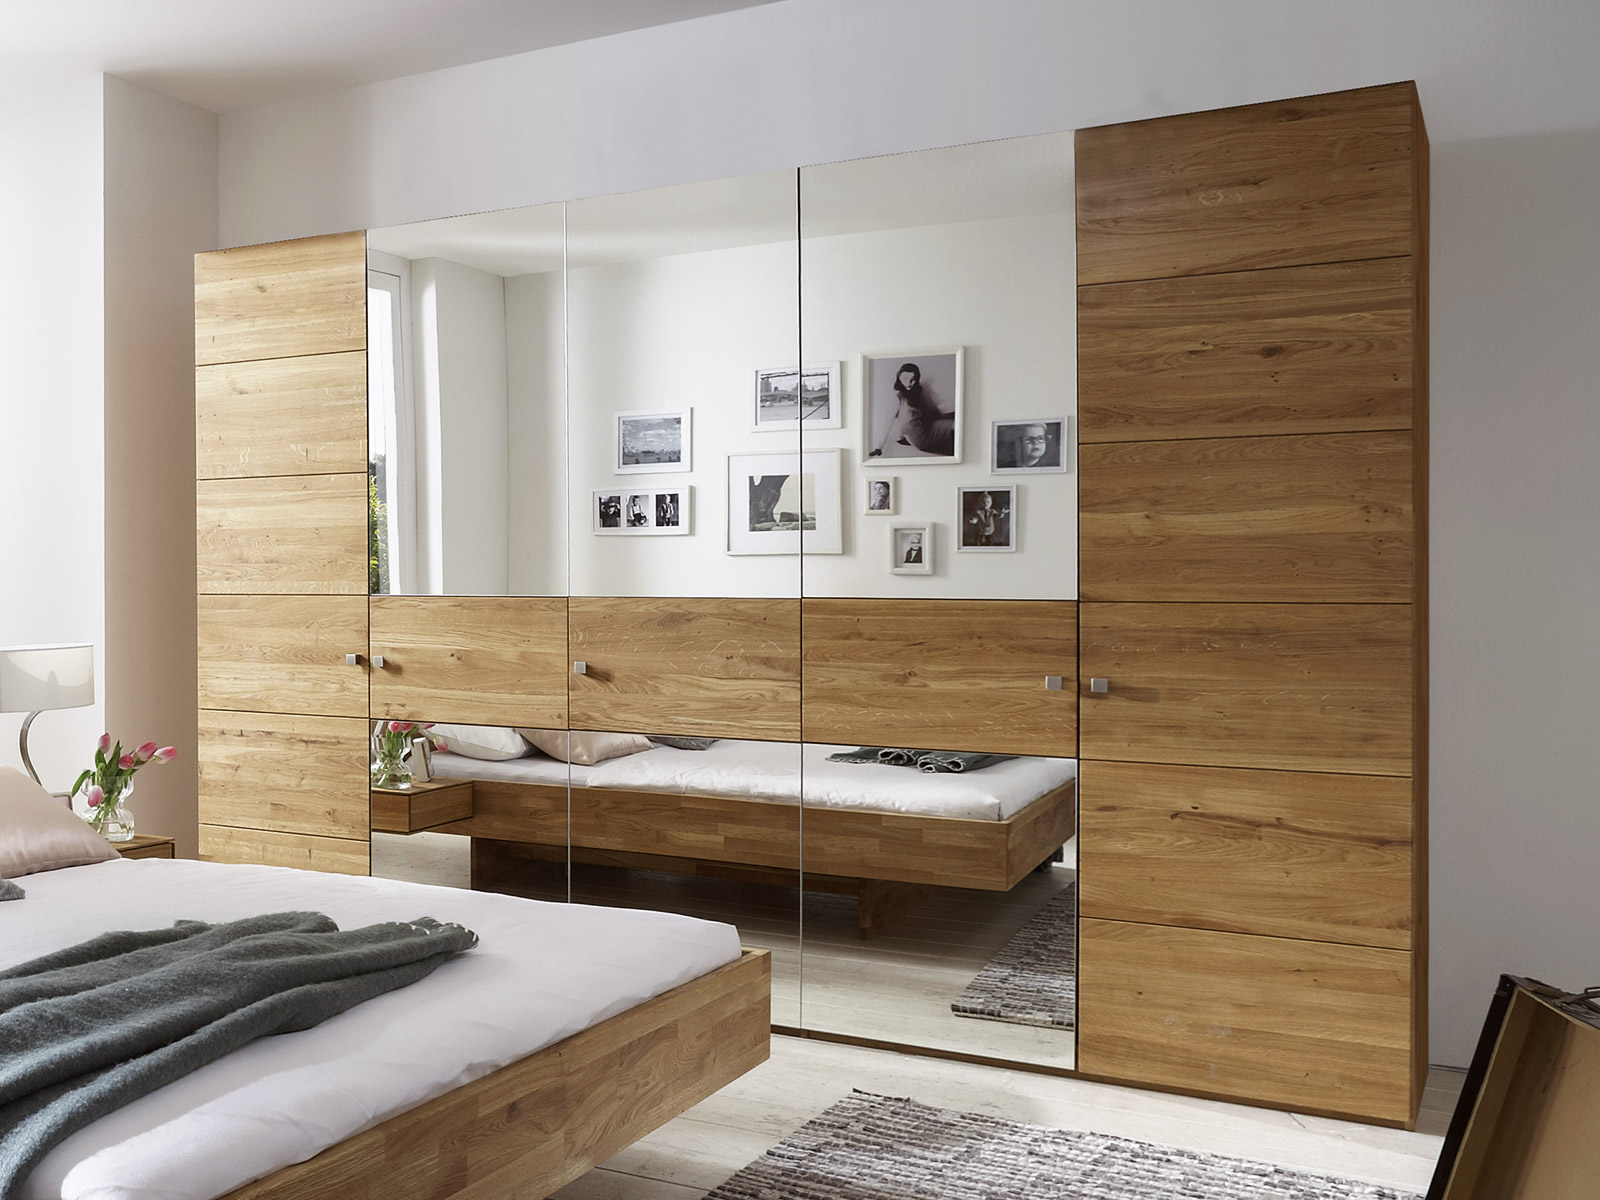 kleiderschrank aus wildeiche mit spiegelfront binita. Black Bedroom Furniture Sets. Home Design Ideas